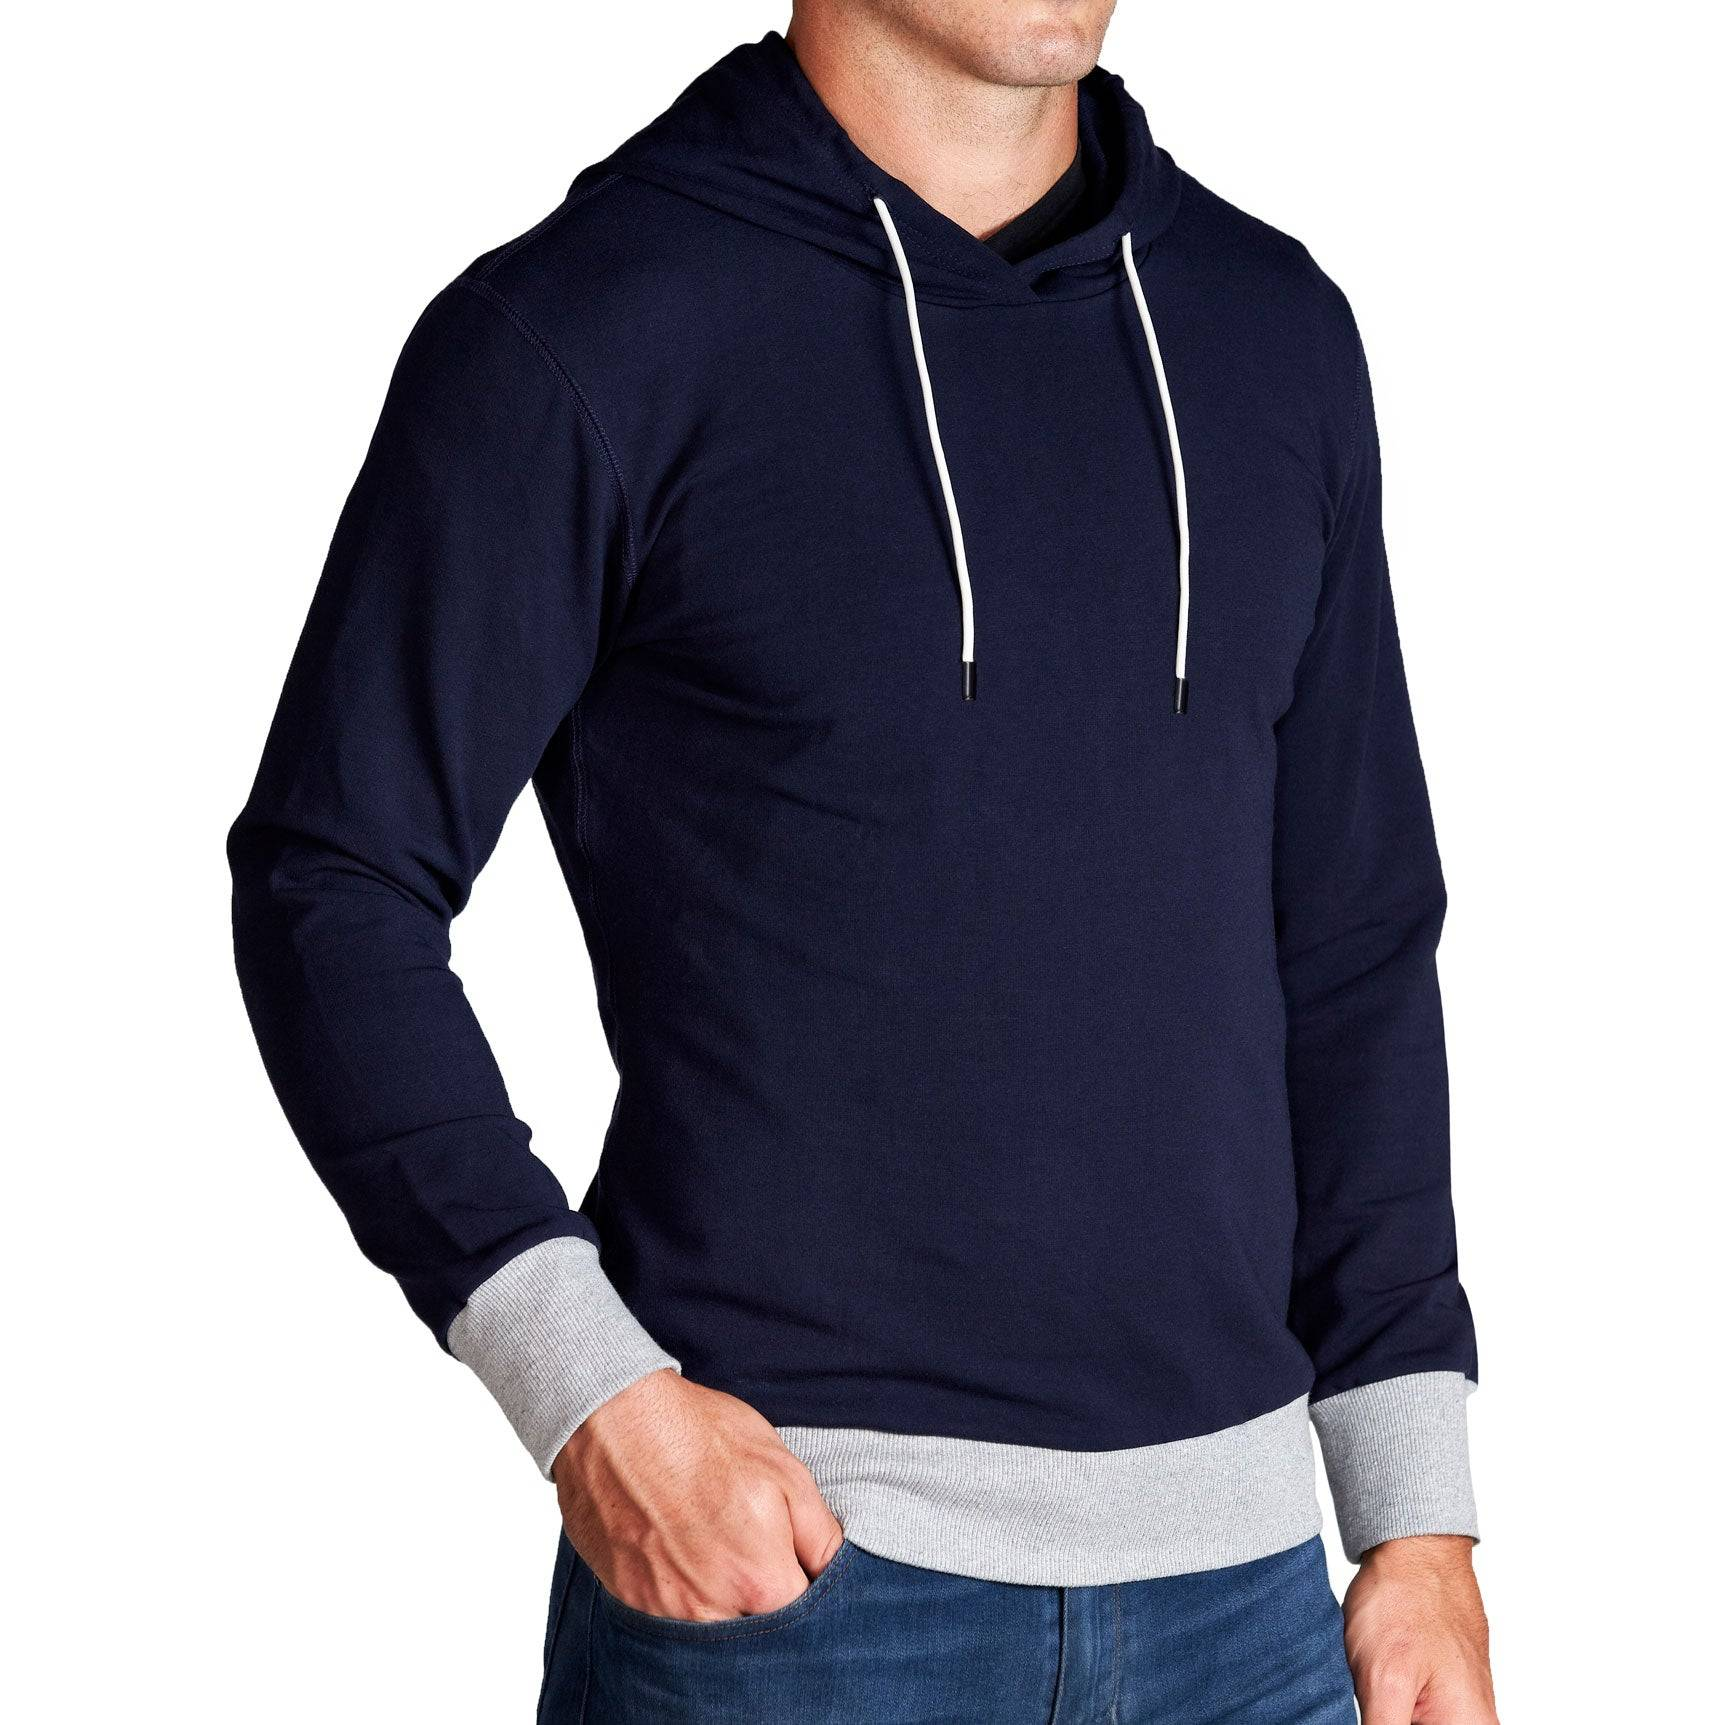 StateLiberty Navy Hoodie with Grey Accents